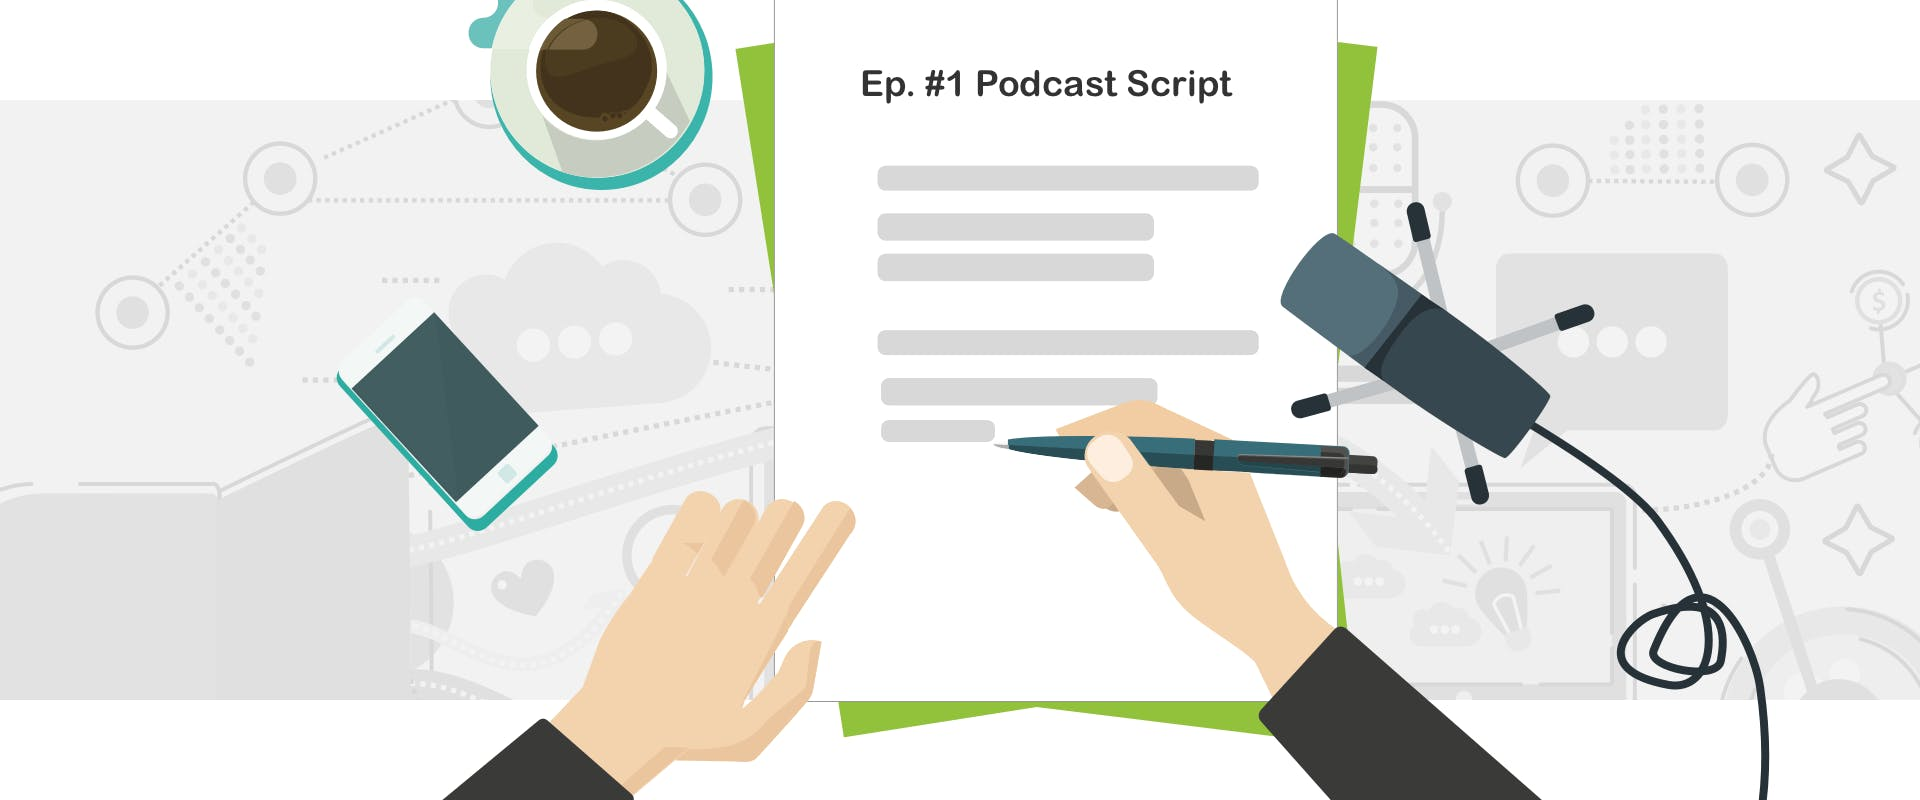 Hand writing a podcast script on a sheet of white paper